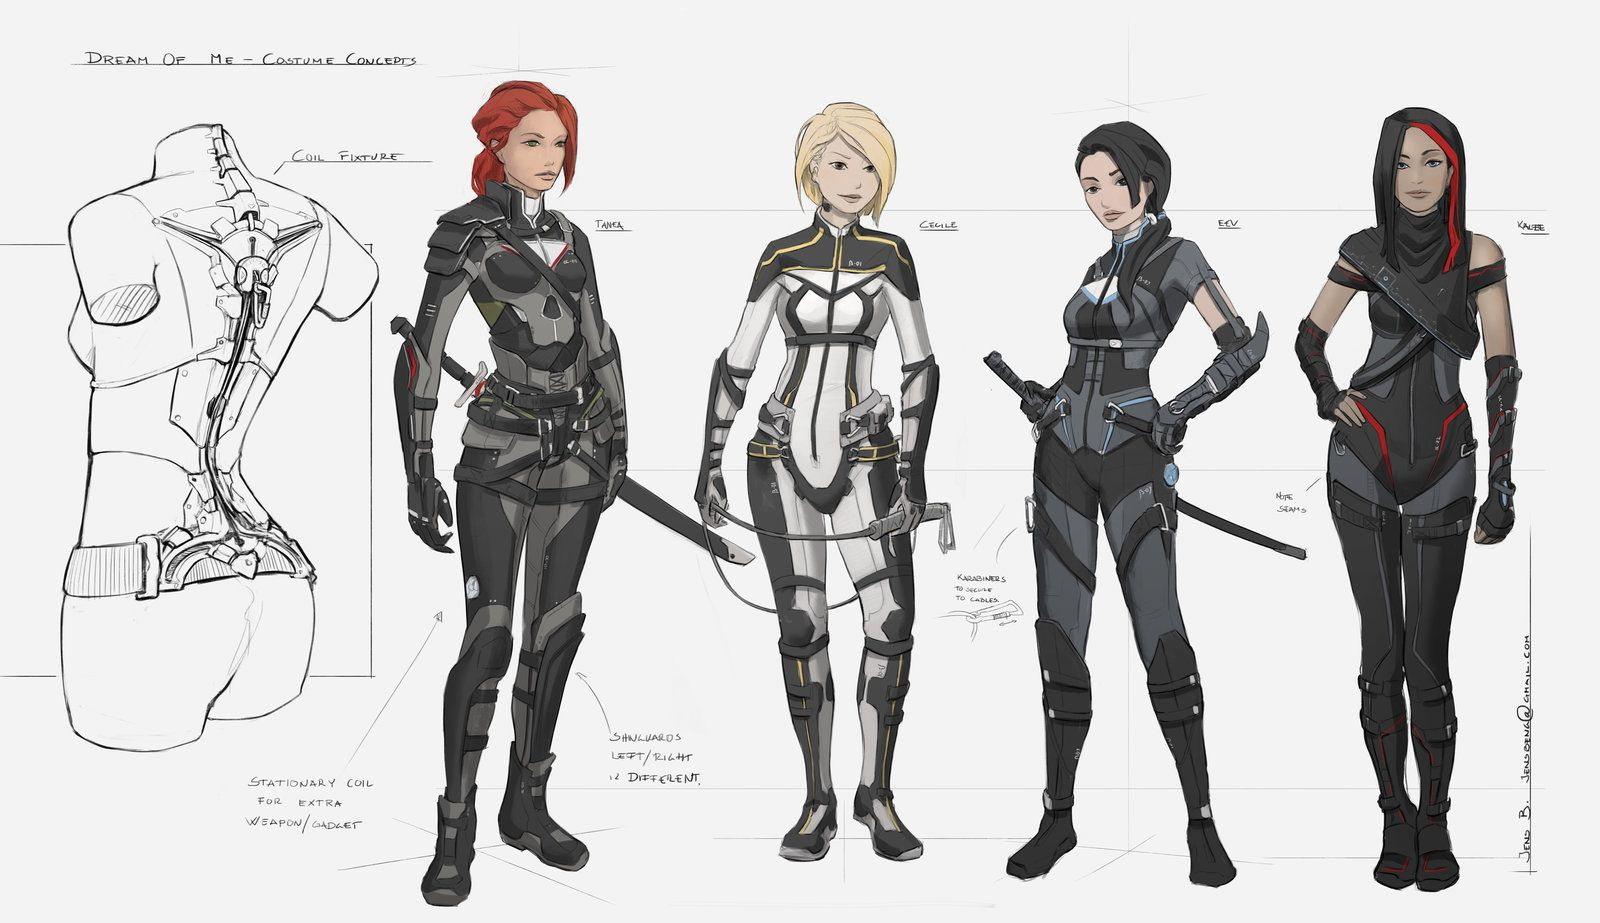 Character Design Lineup : Dream of me character lineup by rubisko viantart on